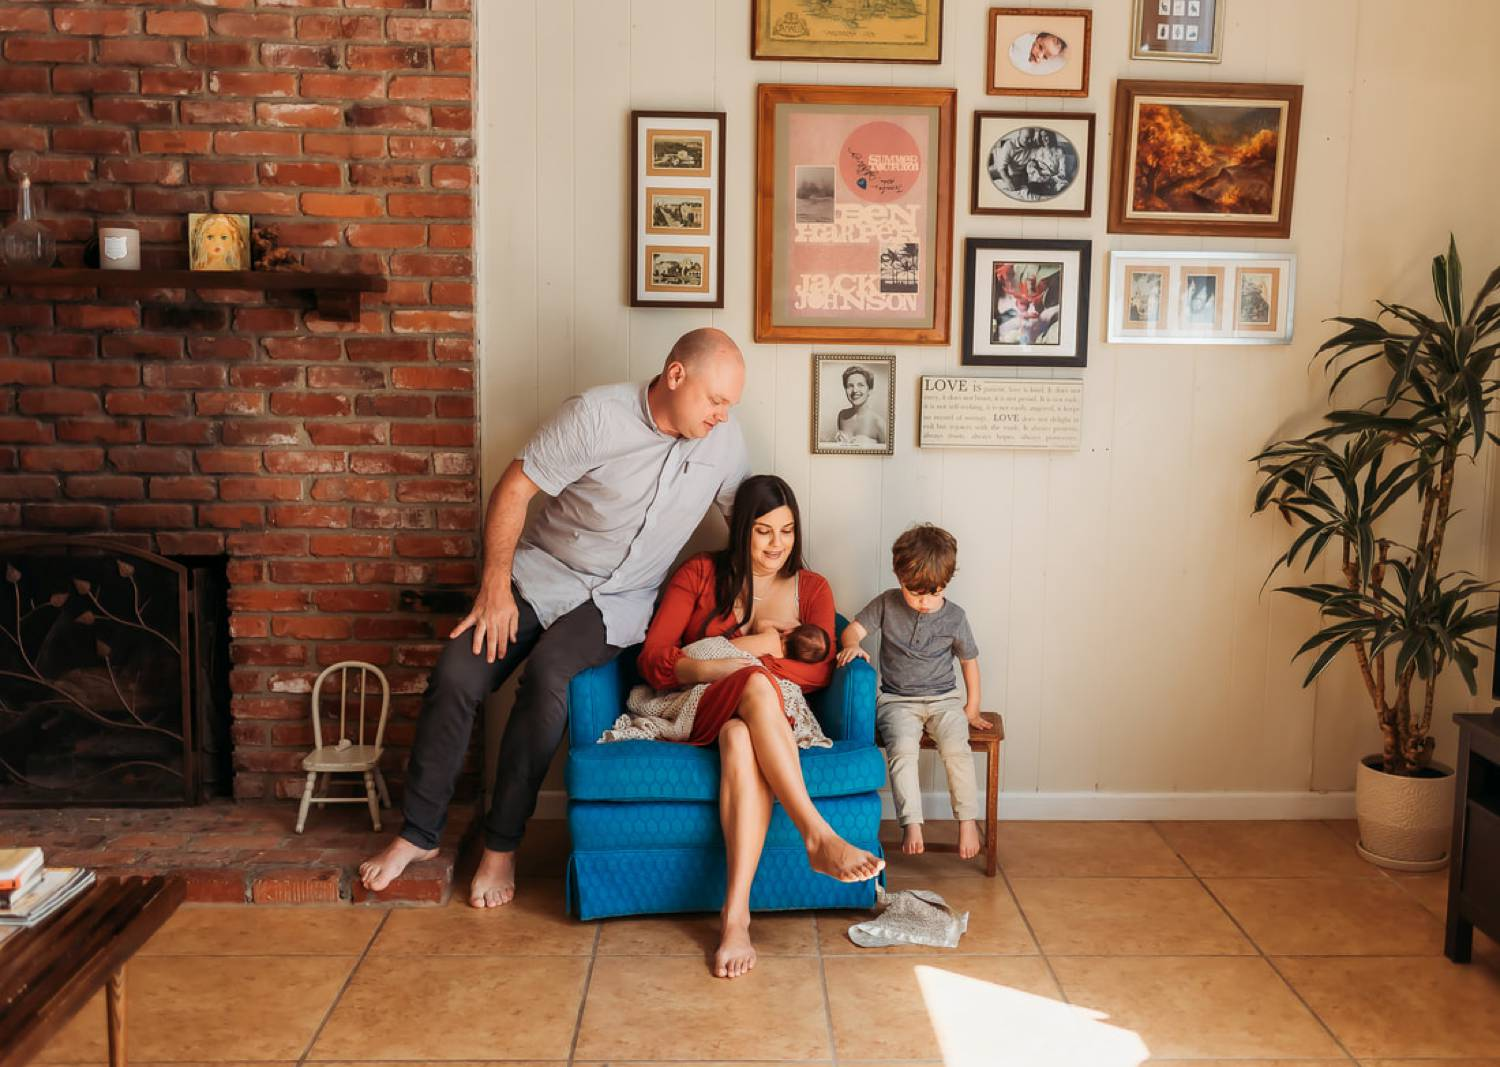 Photo: Charlotte Ani's in-home lifestyle newborn portrait depicts a mom sitting in a blue chair breastfeeding her infant. Her husband sits on the arm of the chair beside her, and their young son sits opposite his father on a small side table.